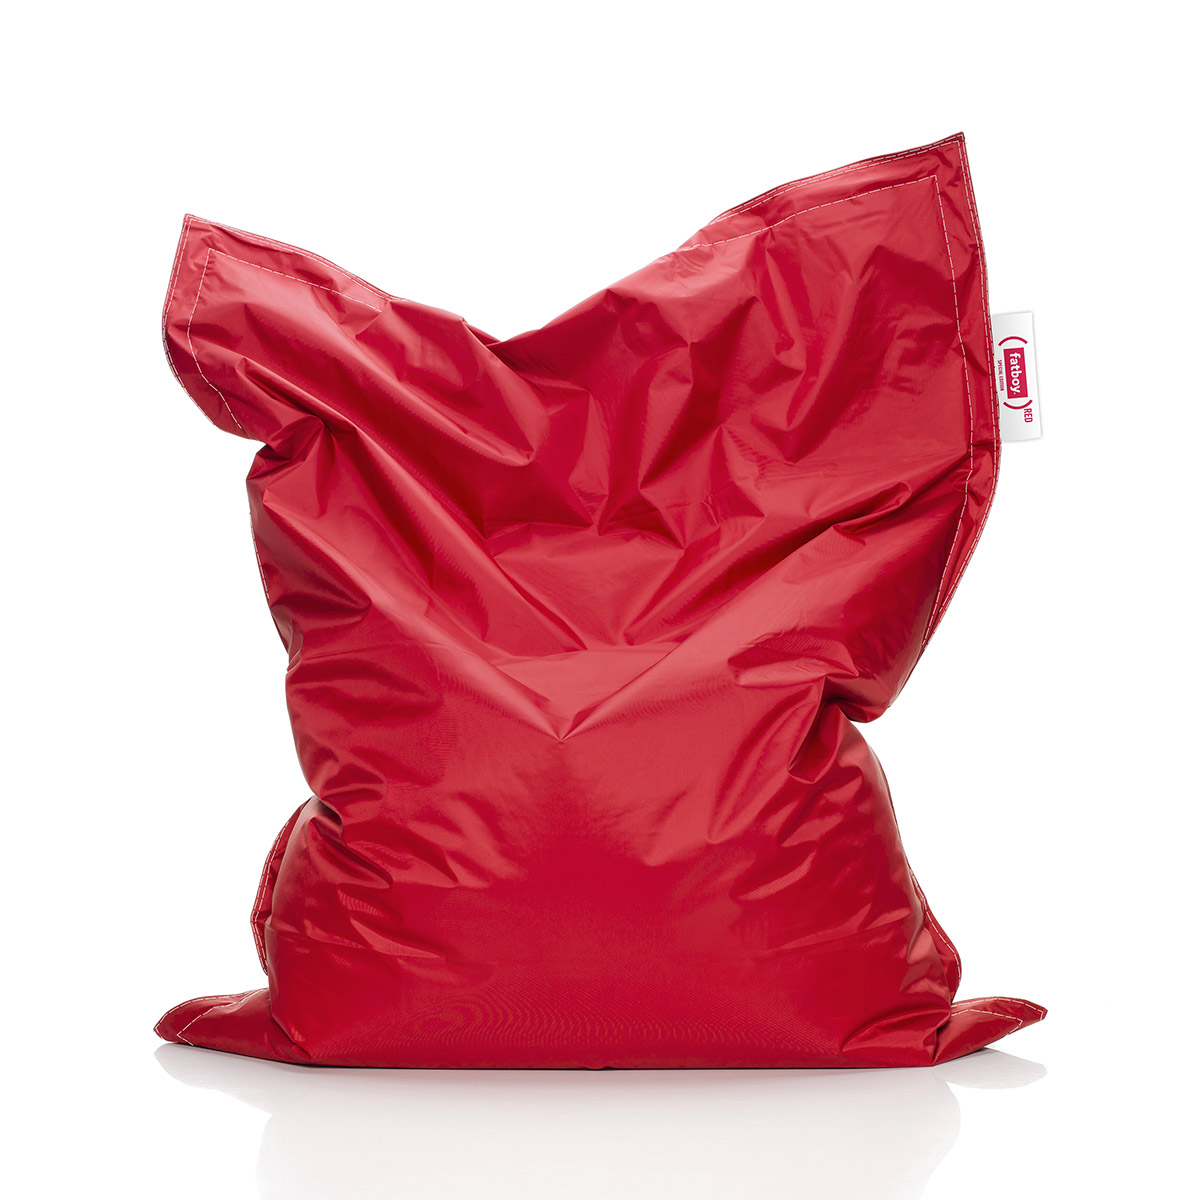 Fatboy Zitzak Limited Edition.Bean Bags From Outdoor To Kids A Bean Bag For All Occasions Fatboy